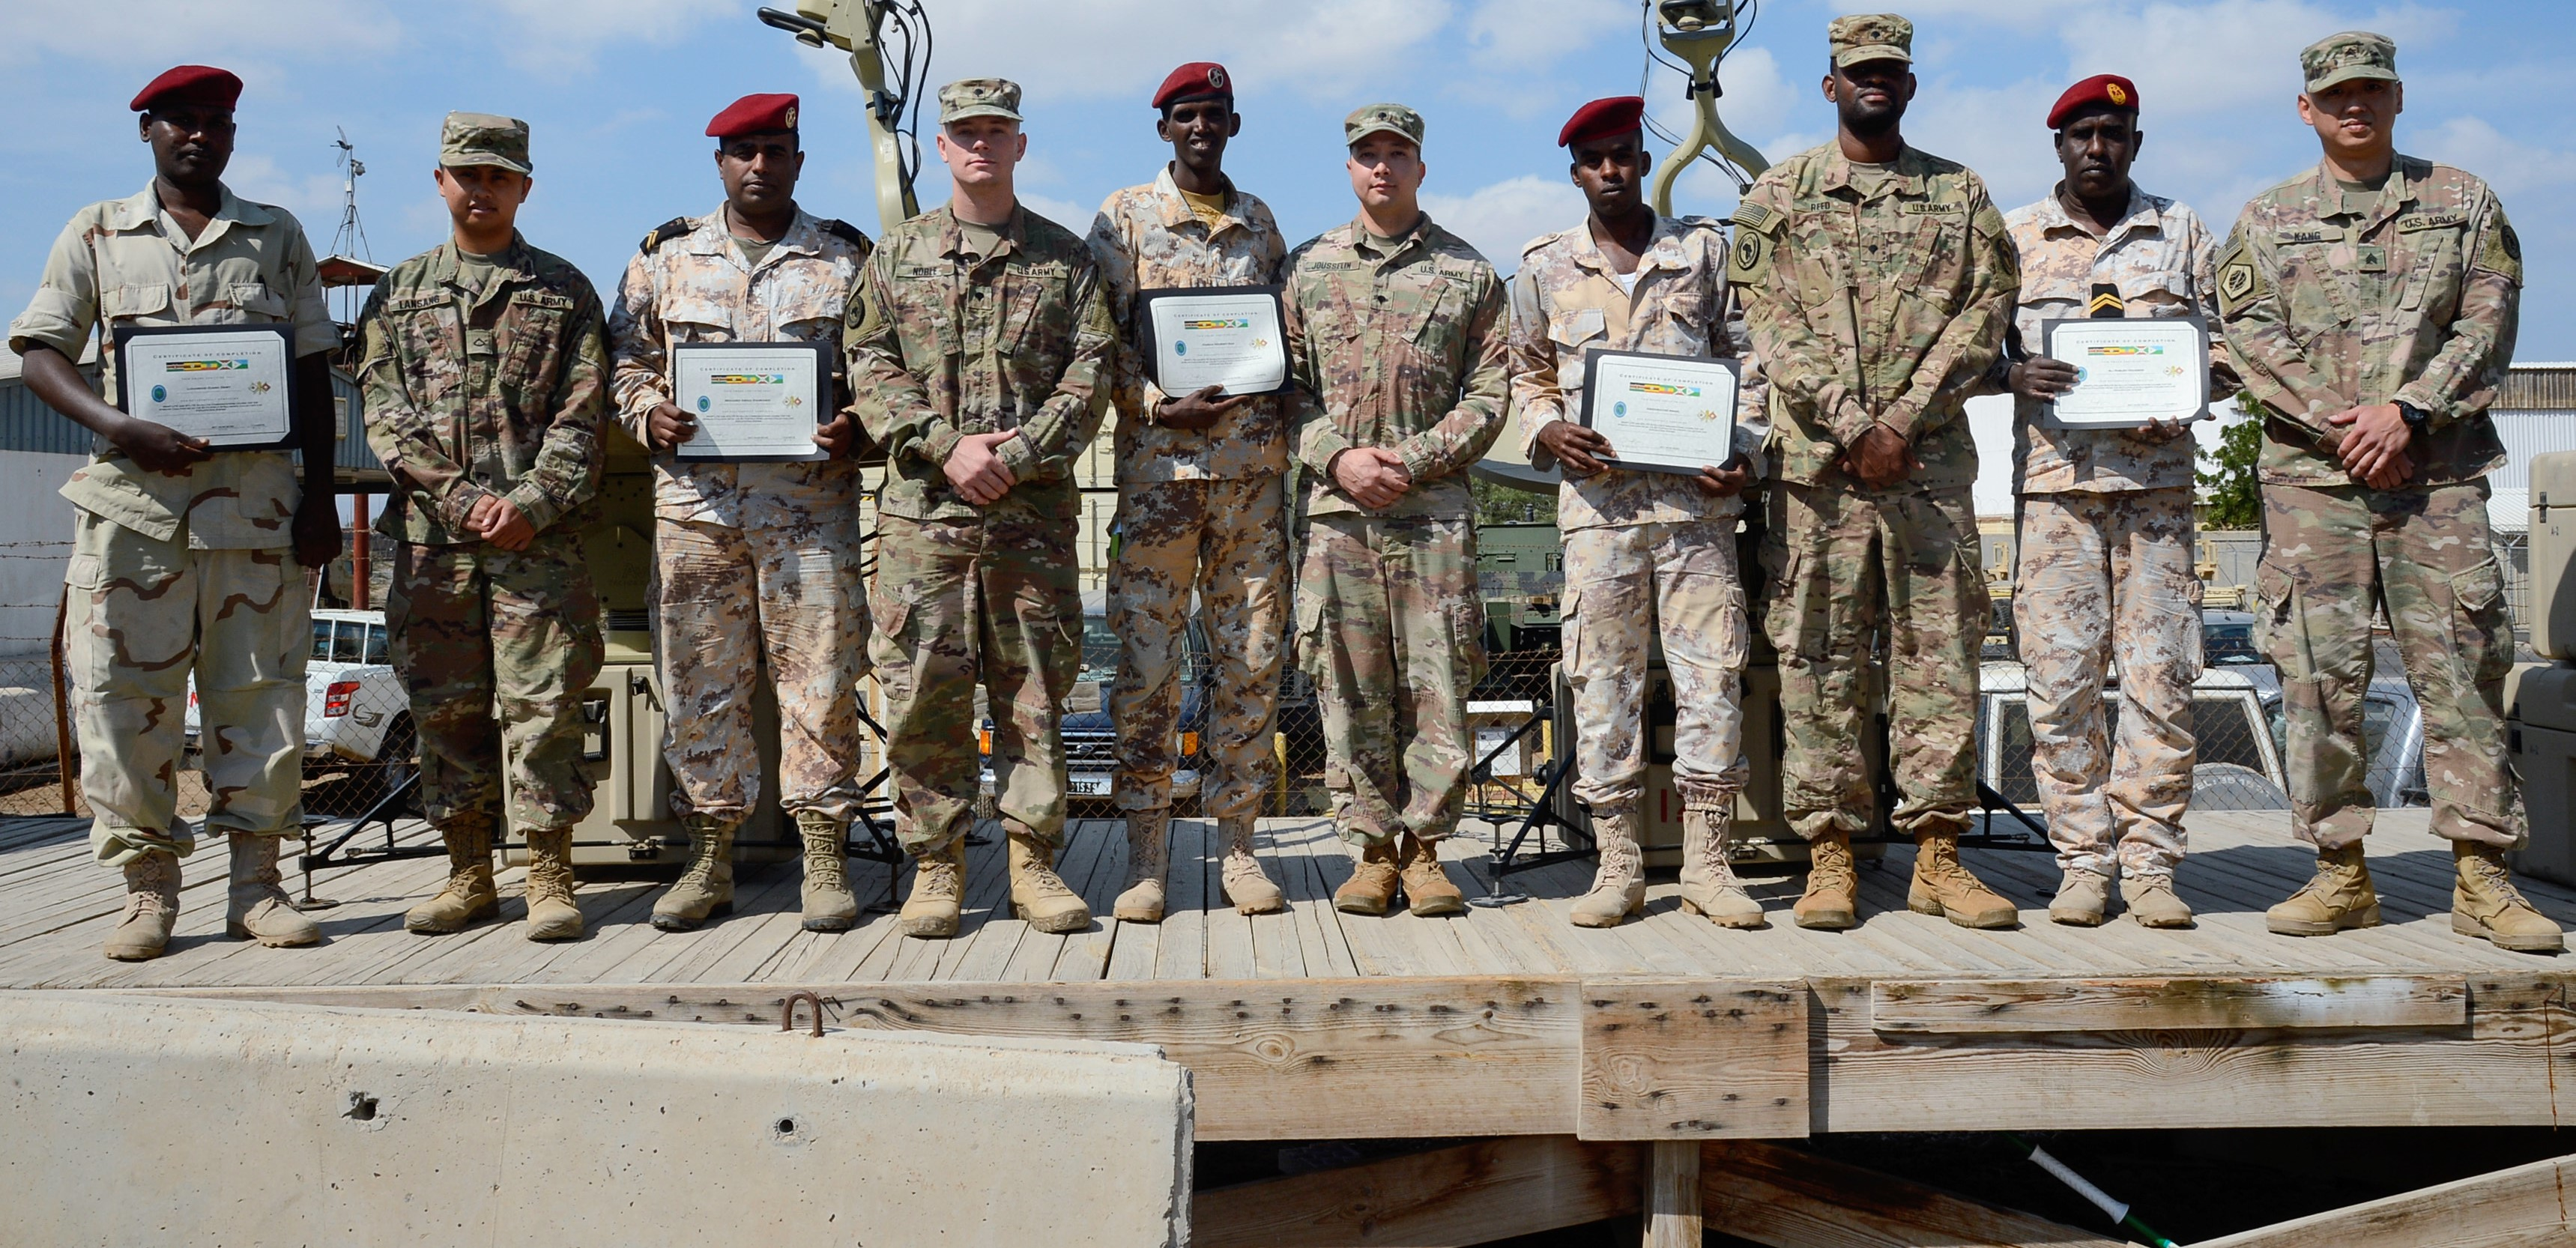 U.S. Soldiers assigned to the Combined Joint Task Force - Horn of Africa (CJTF-HOA) Communications Directorate and members of the Djibouti Armed Forces pose for a photo after completing a military-to-military exchange course at Camp Lemonnier, Djibouti, Jan. 17, 2018. Throughout a two-week period, communications experts advised Djiboutian service members on how to set up, operate, maintain, and troubleshoot network equipment to increase communication capabilities between African Union Mission in Somalia forces. (U.S. Navy photo by Mass Communications Specialist 2nd Class Timothy M. Ahearn)